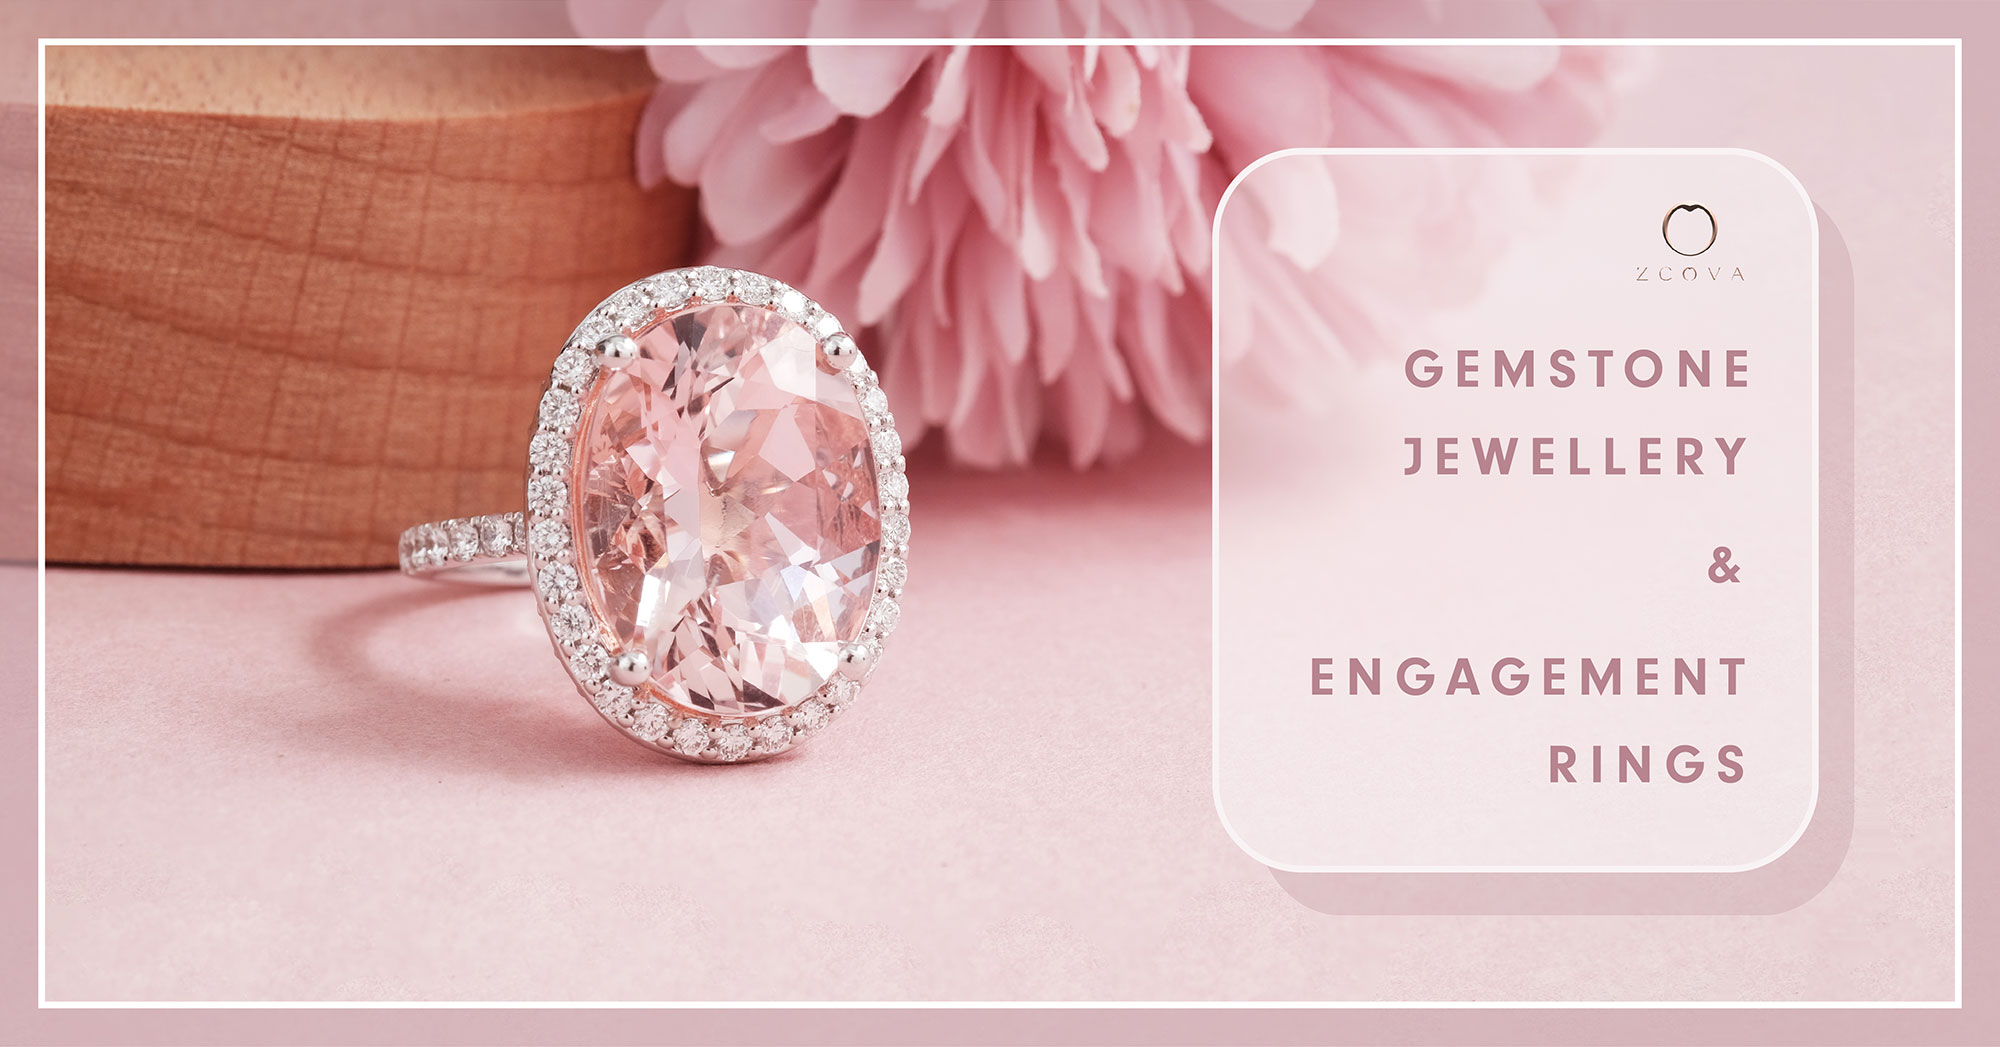 Gemstone Jewellery and engagement rings